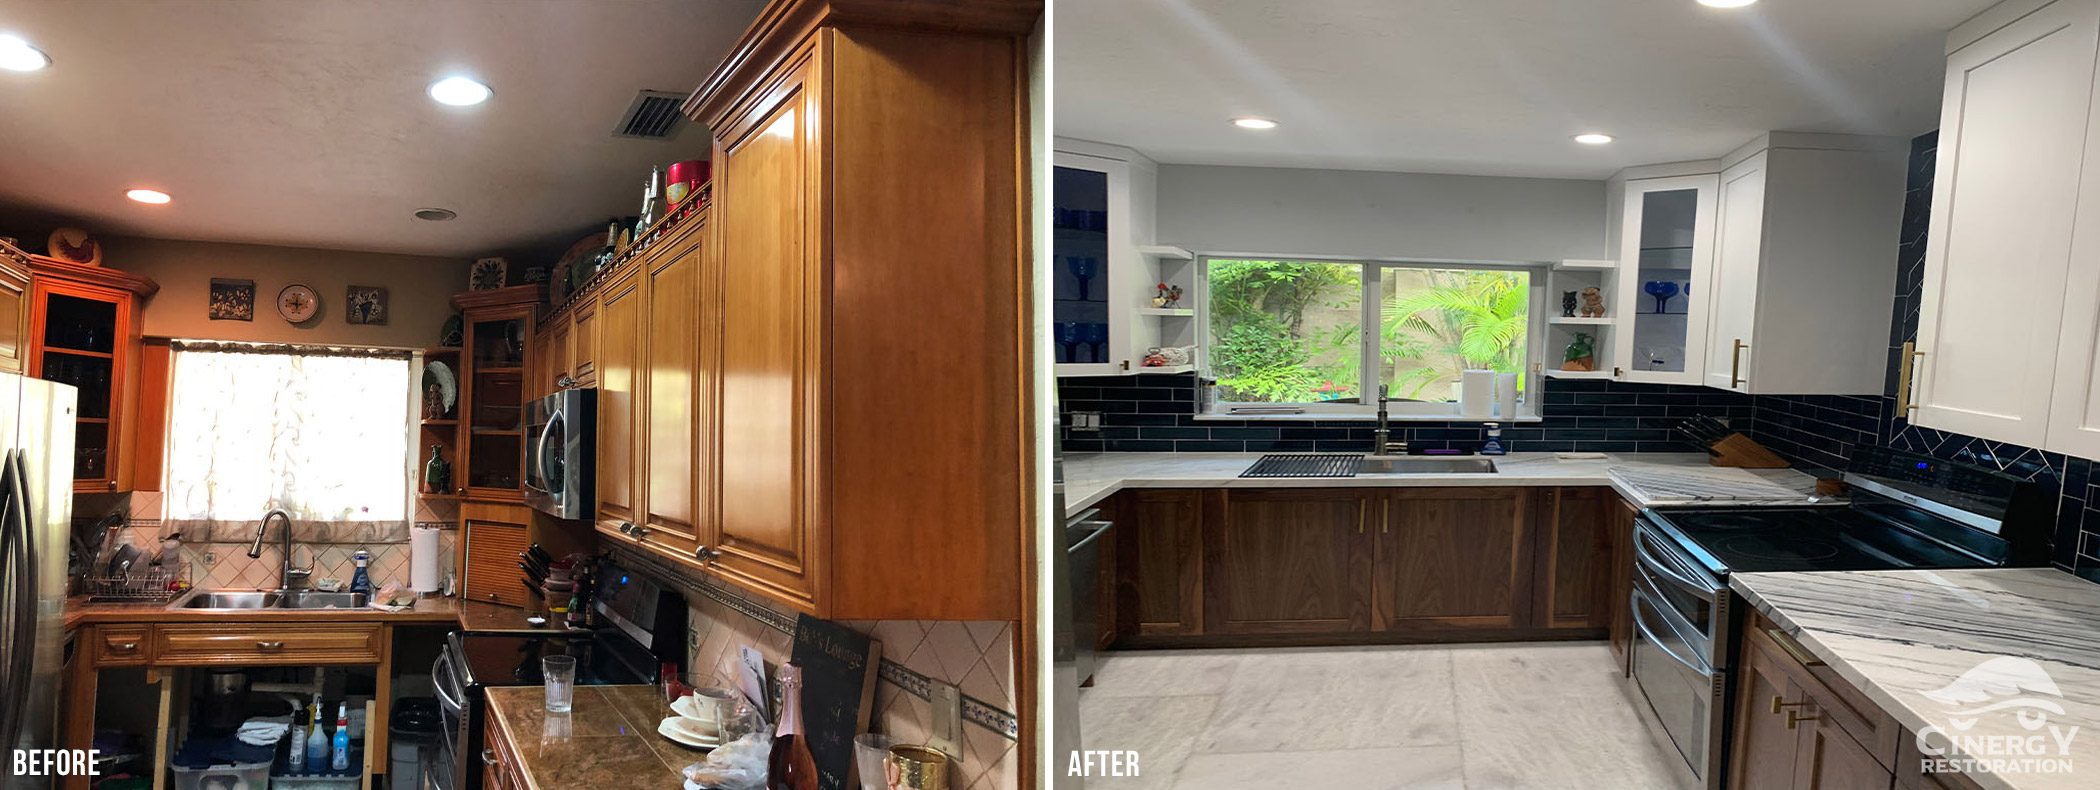 Cinergy Before After Kitchen